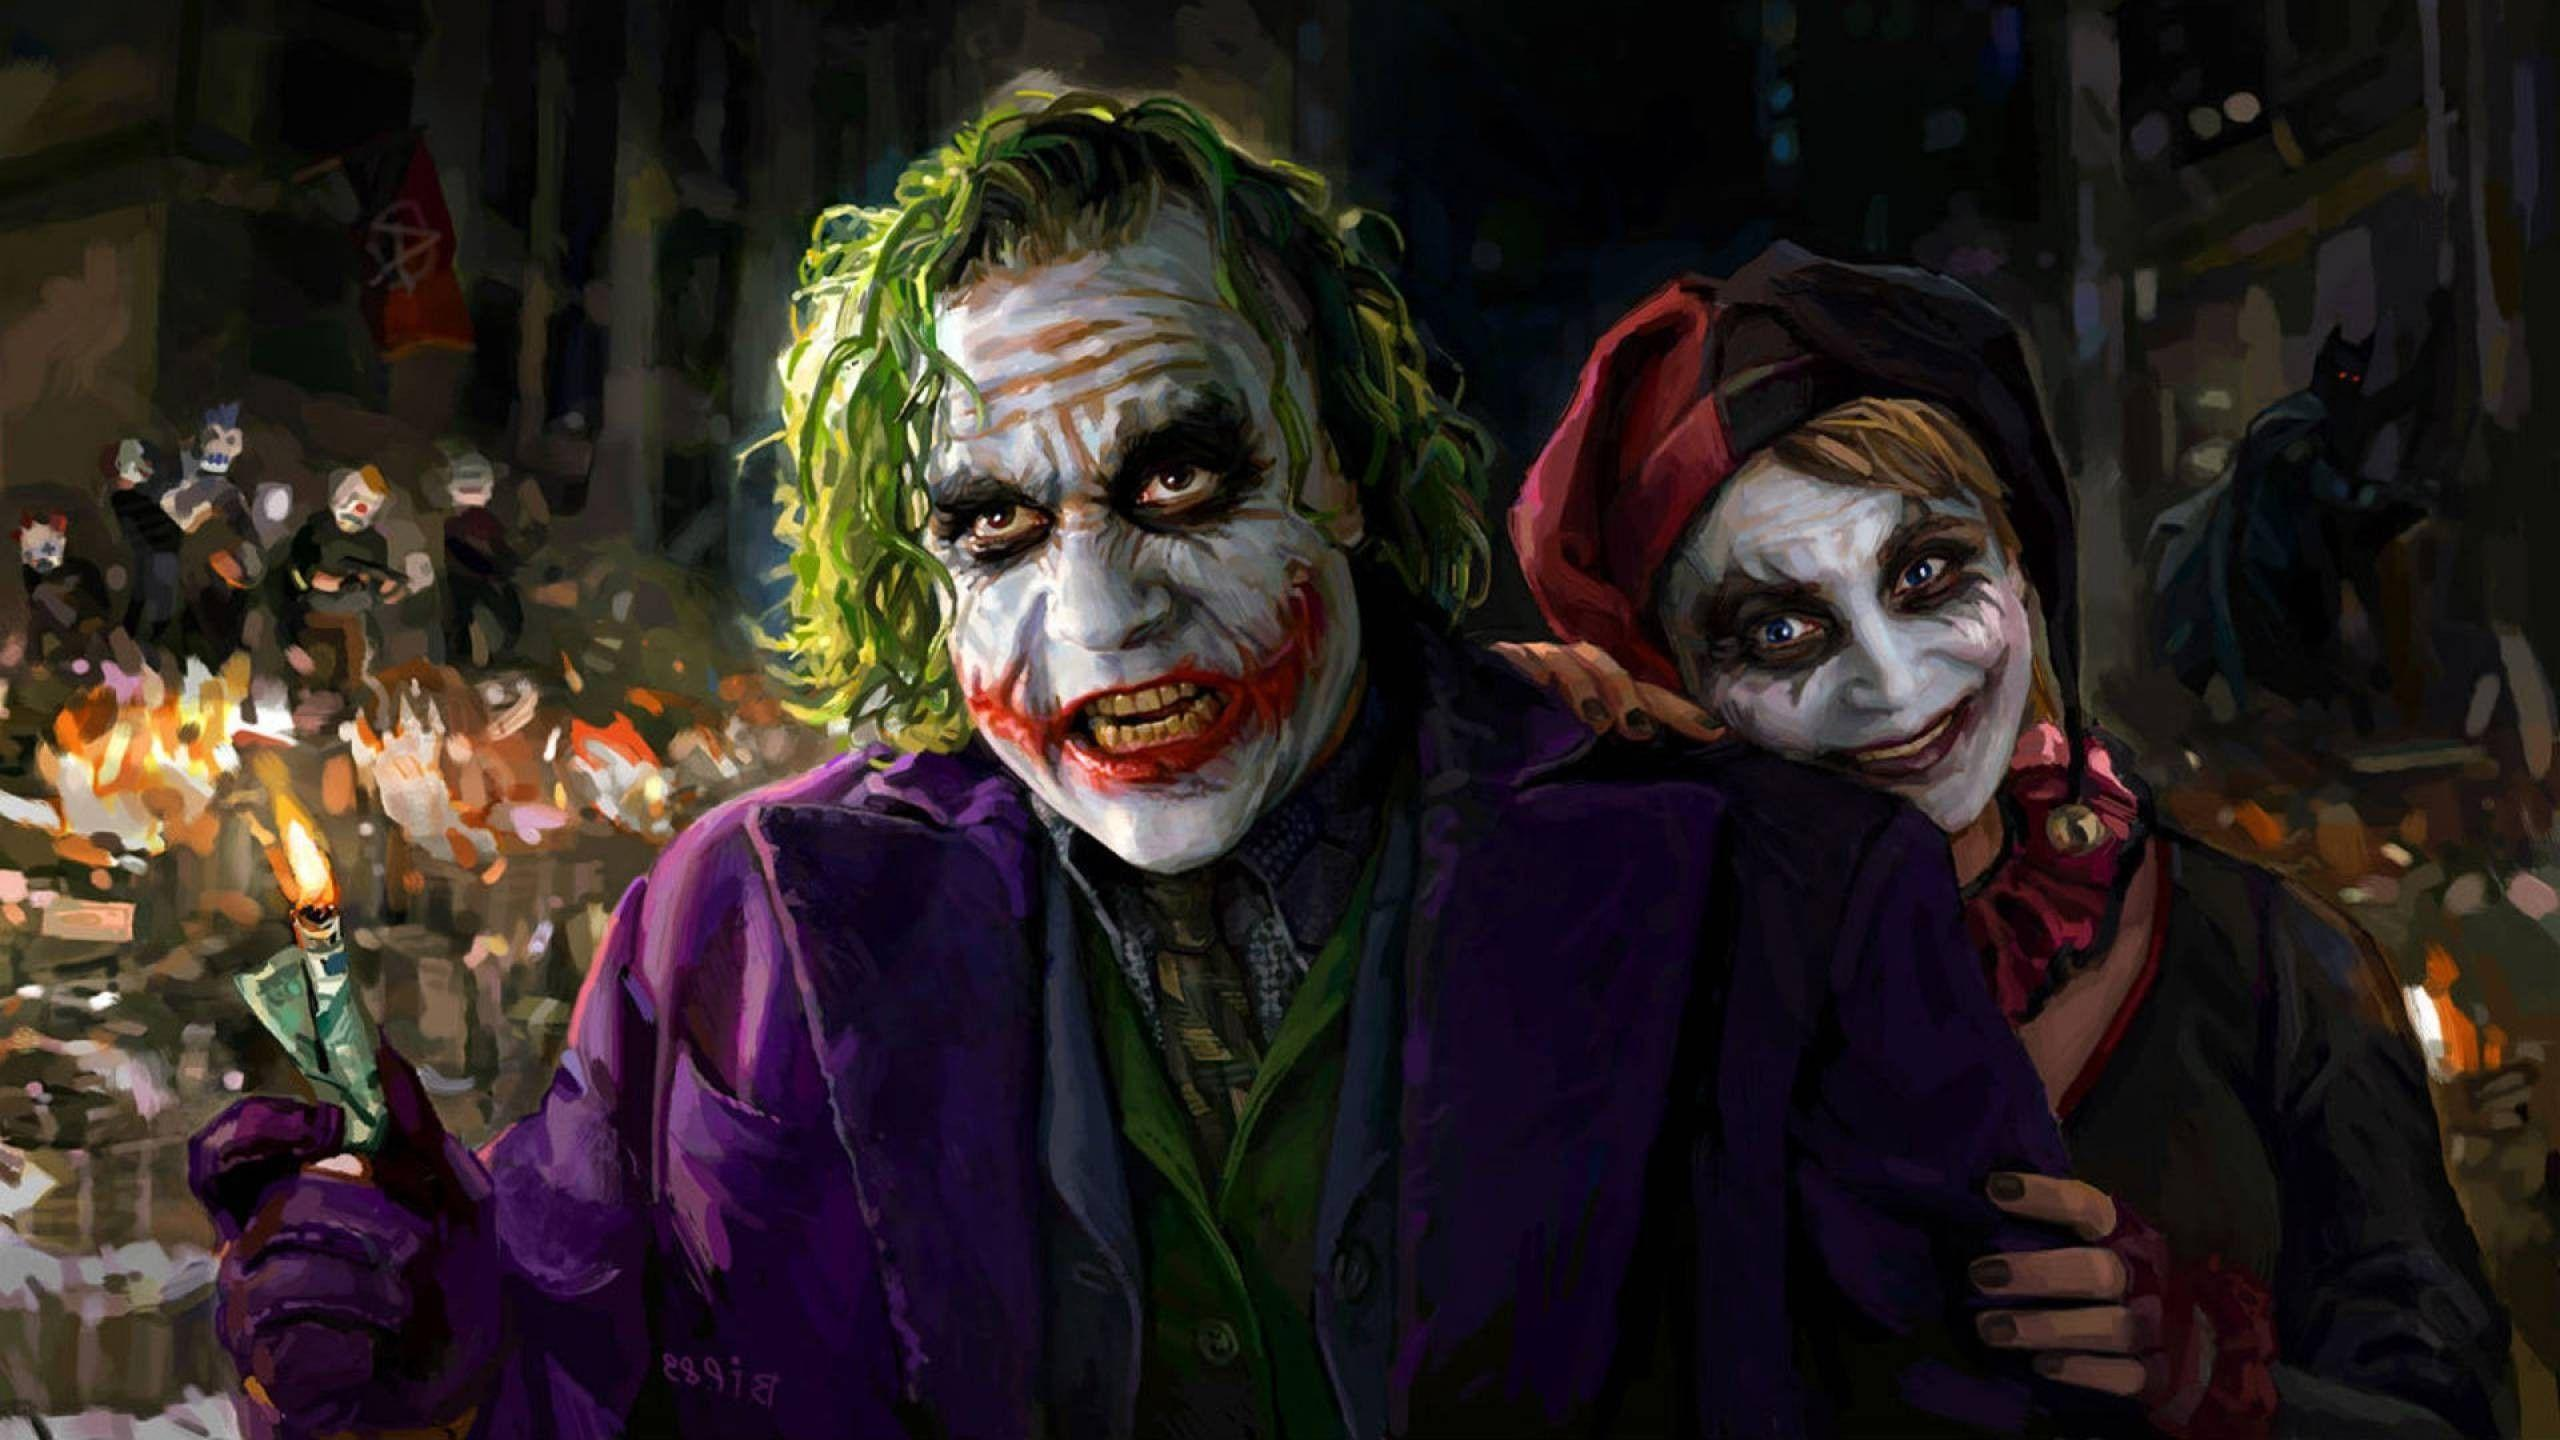 Wallpapers : Joker, movies, Harley Quinn, Carnival, costume